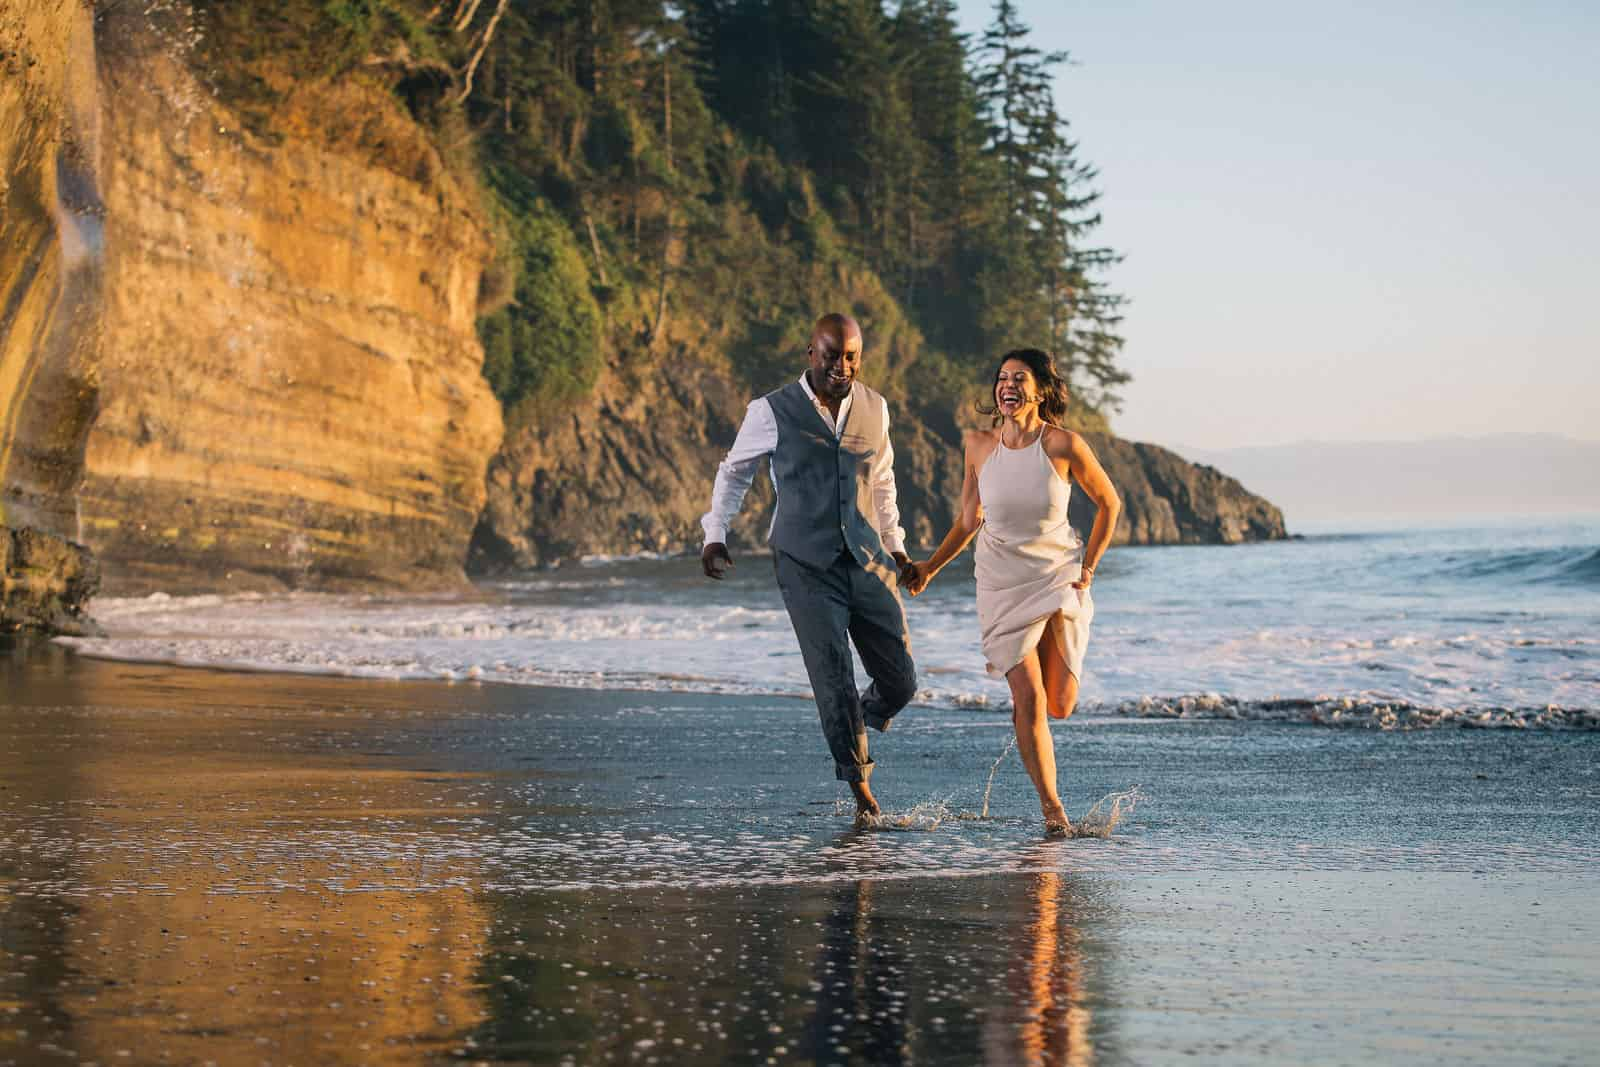 Newlyweds splash in the water at Mystic Beach in Juan de Fuca Provincial Park.